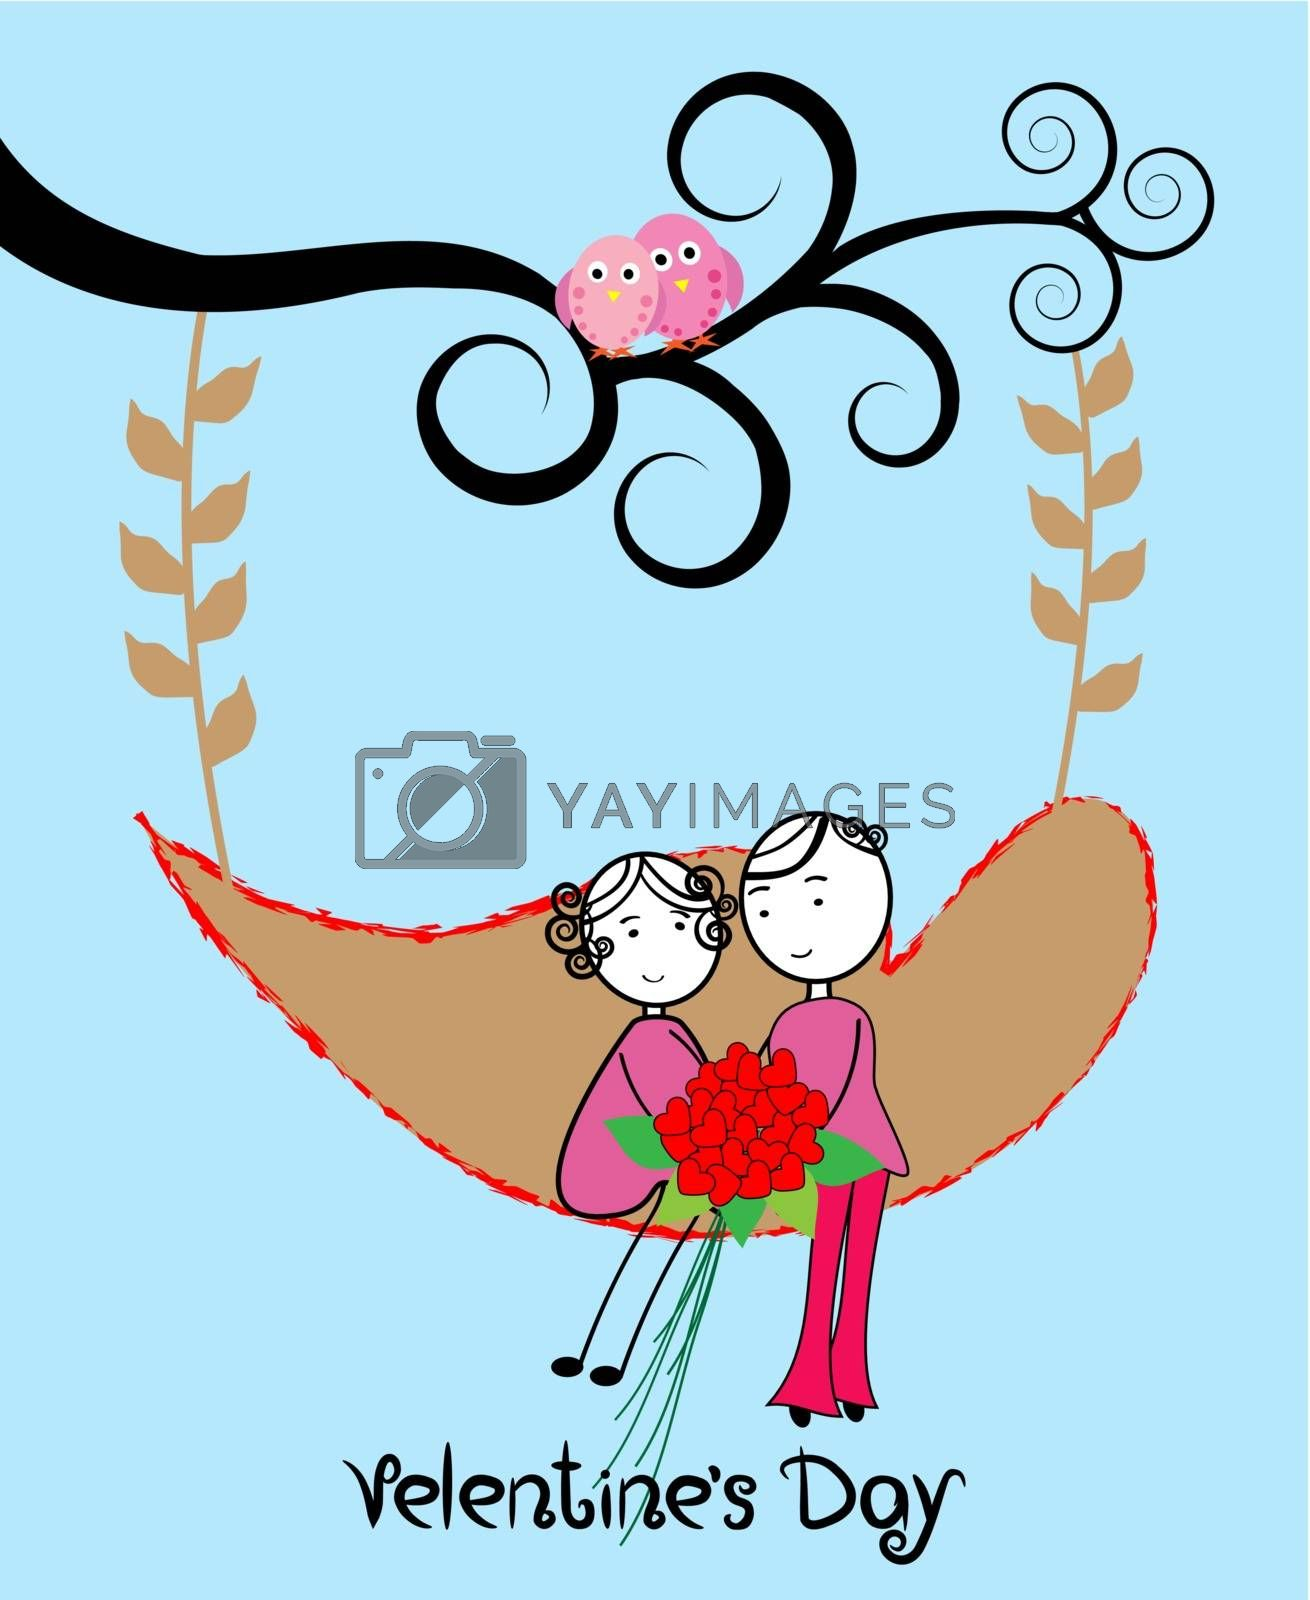 Couple relaxing on a swing-vector illustration